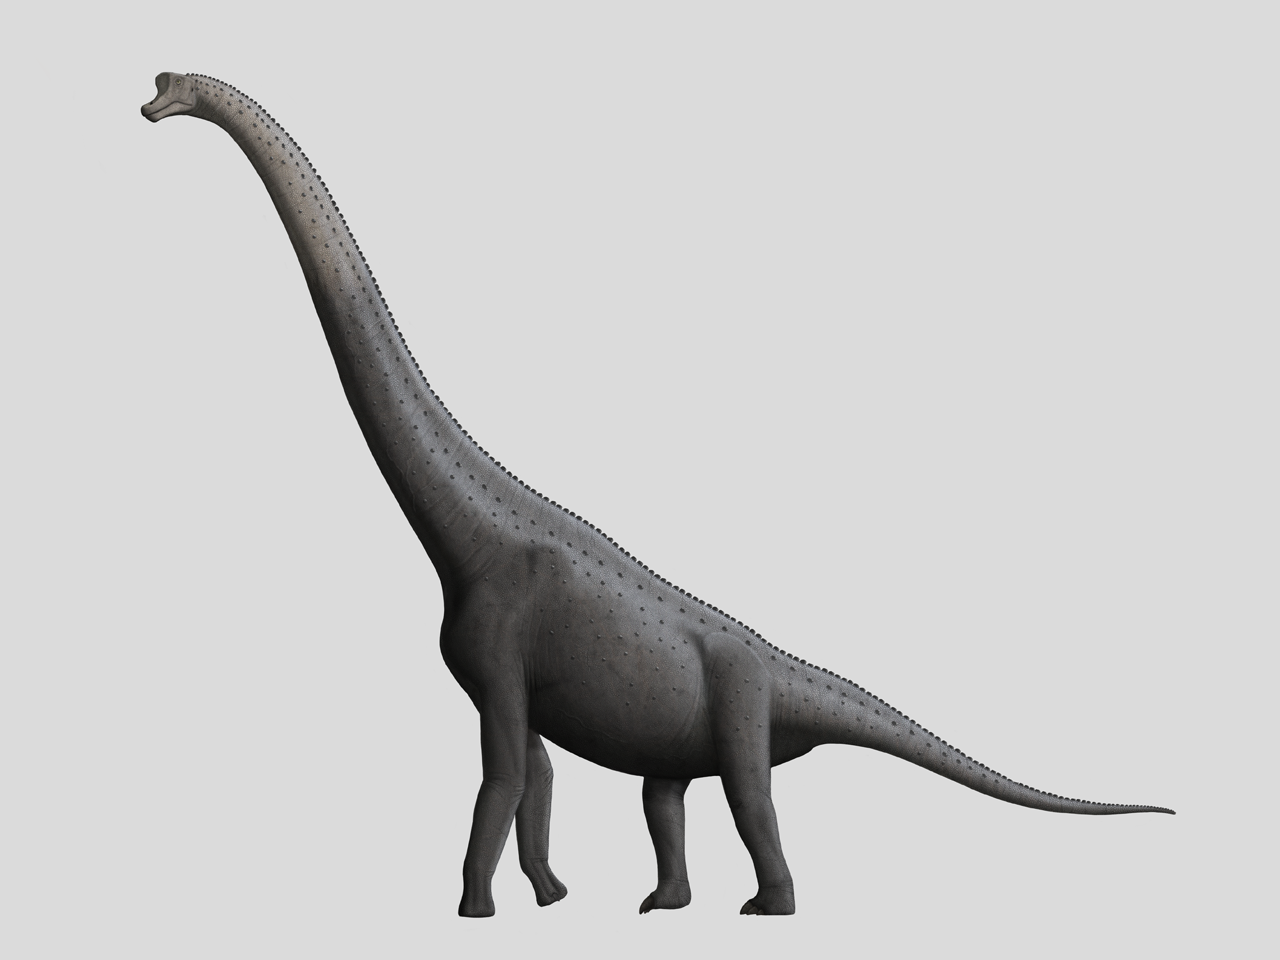 Giraffatitan by Steveoc86 on DeviantArt